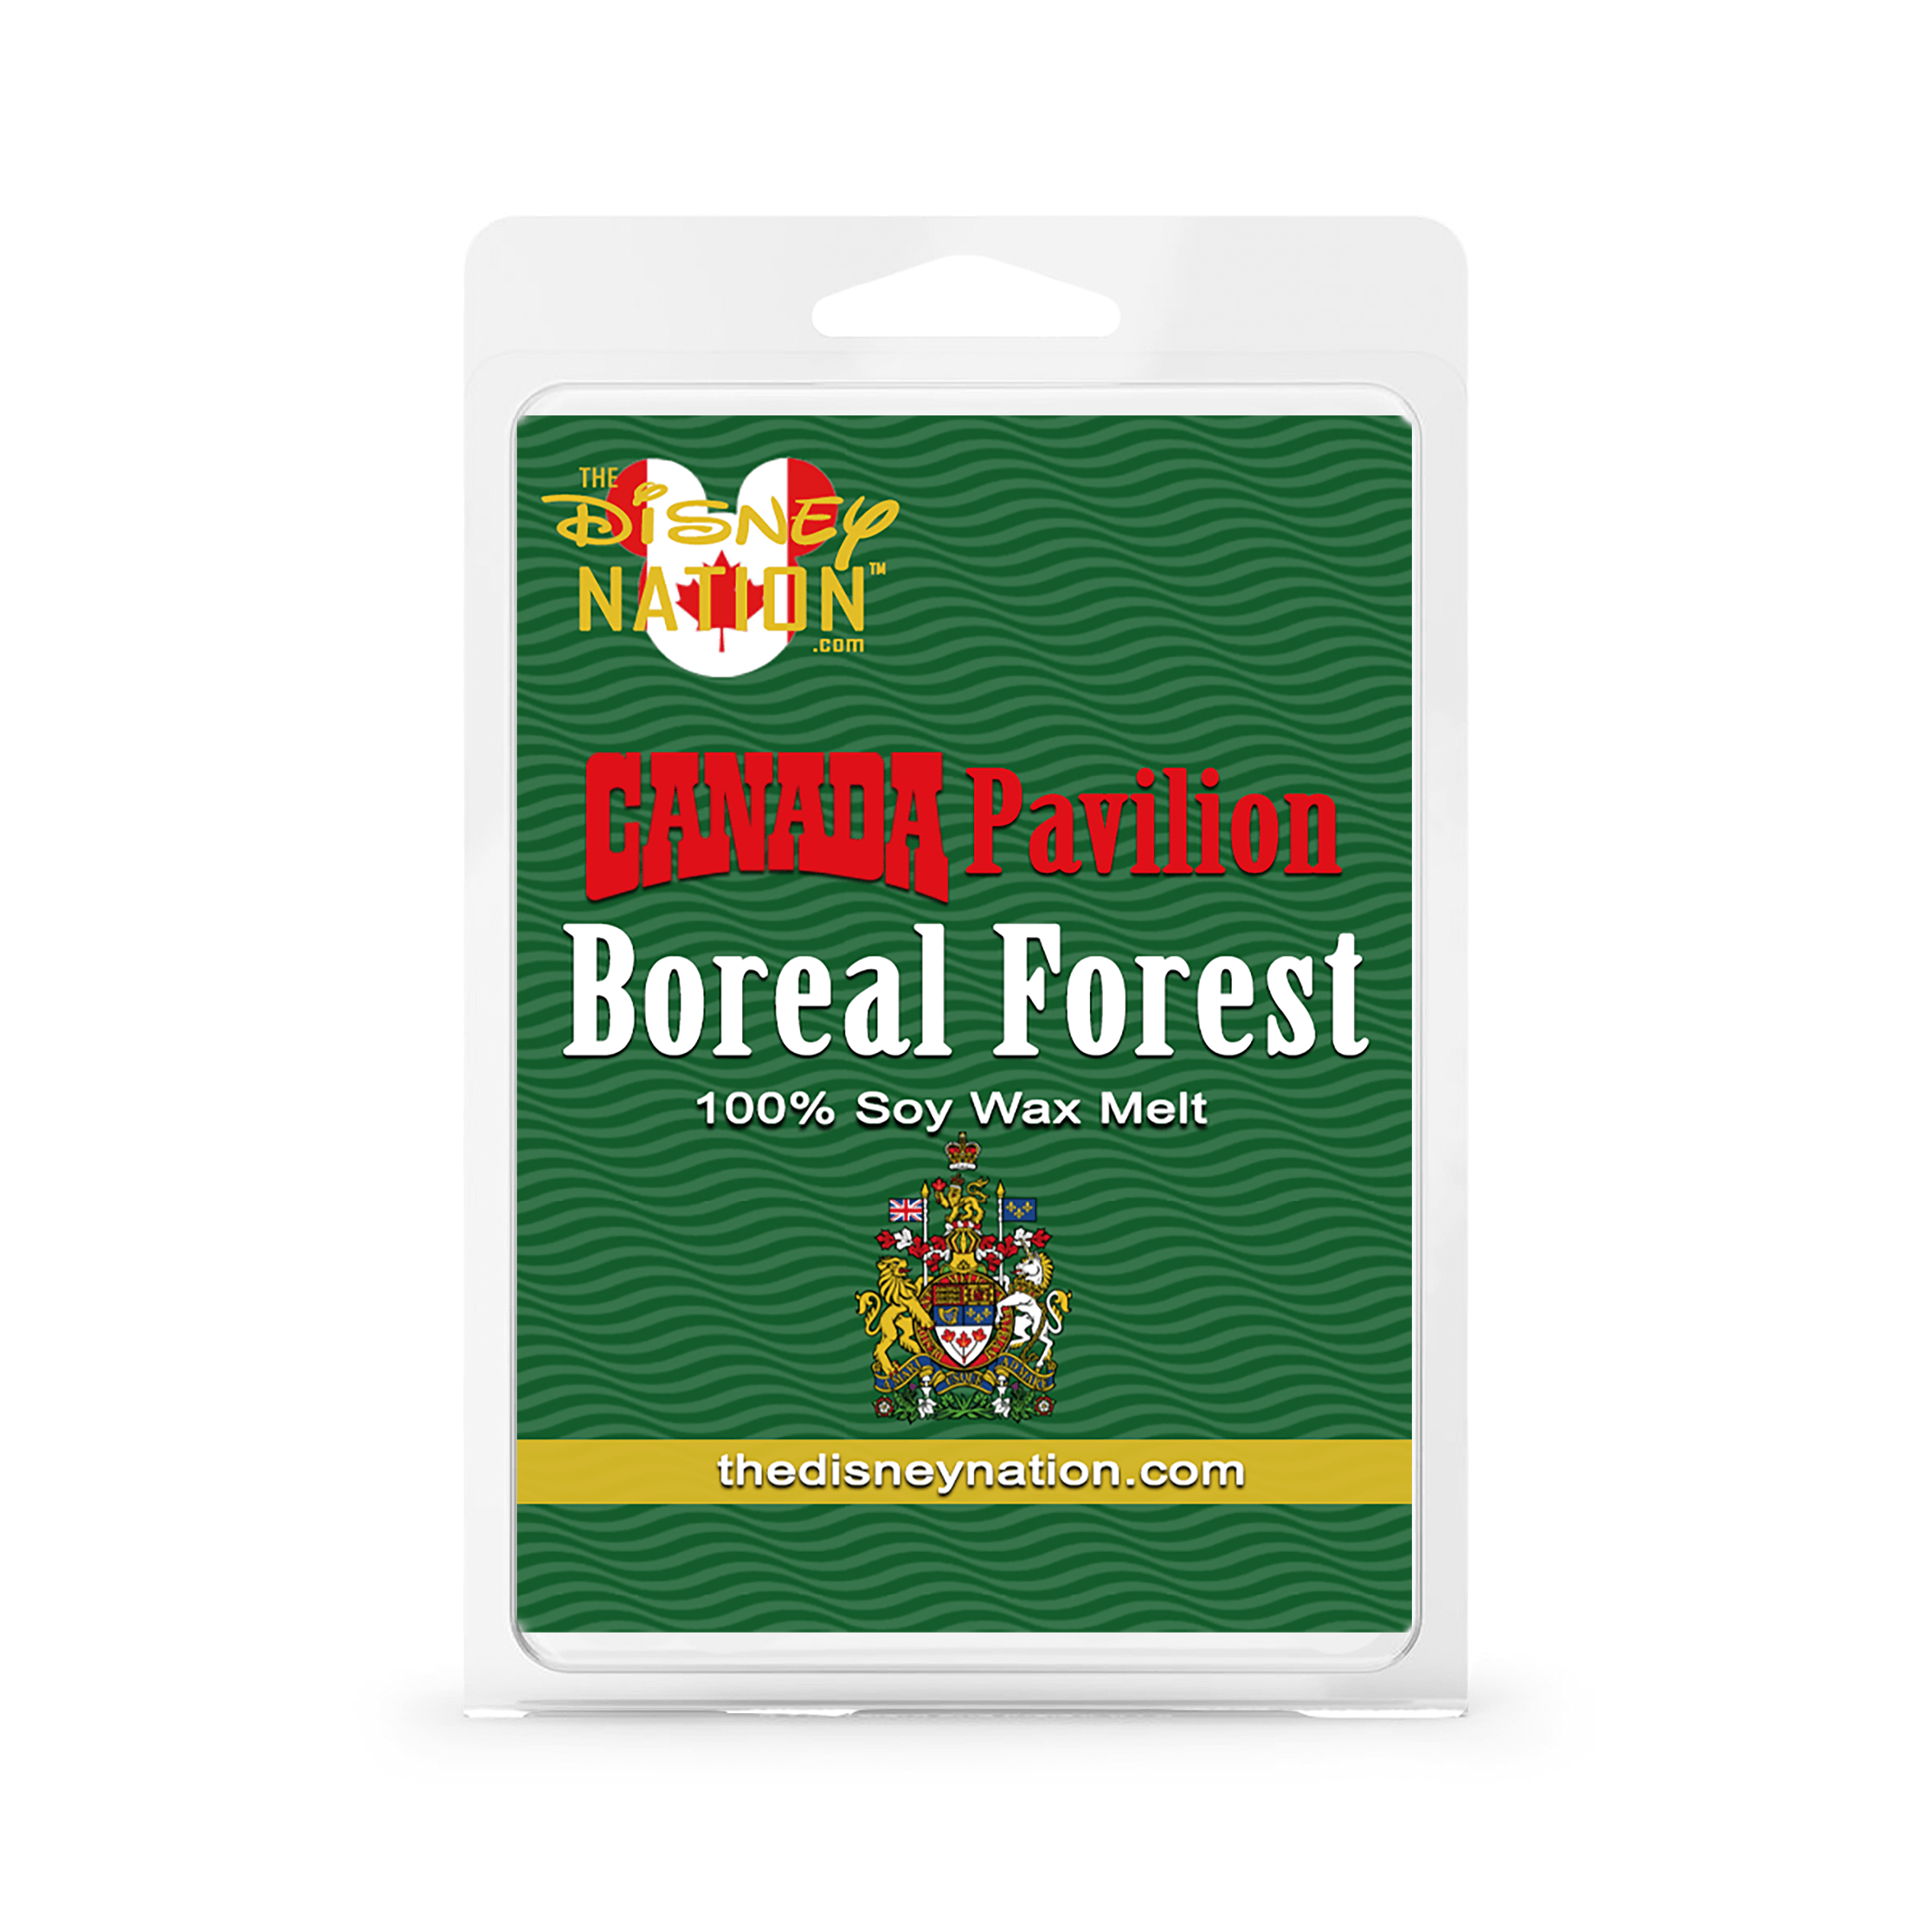 Canada Pavilion - Boreal Forest Fragrance Wax Melts